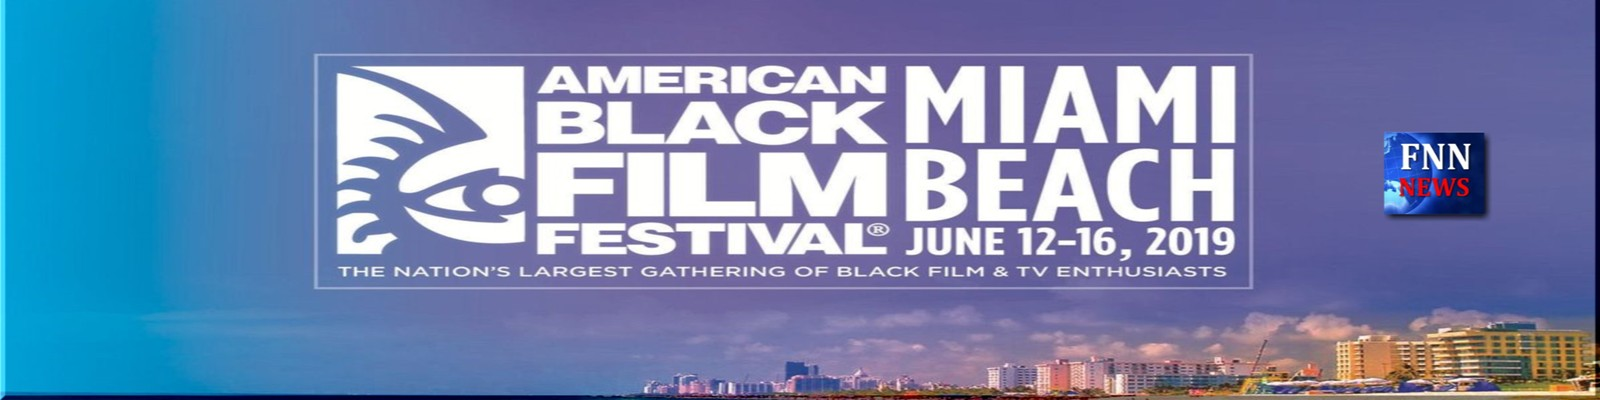 American Black Film Festival, FNN NEWS, Florida National News, Miami Beach